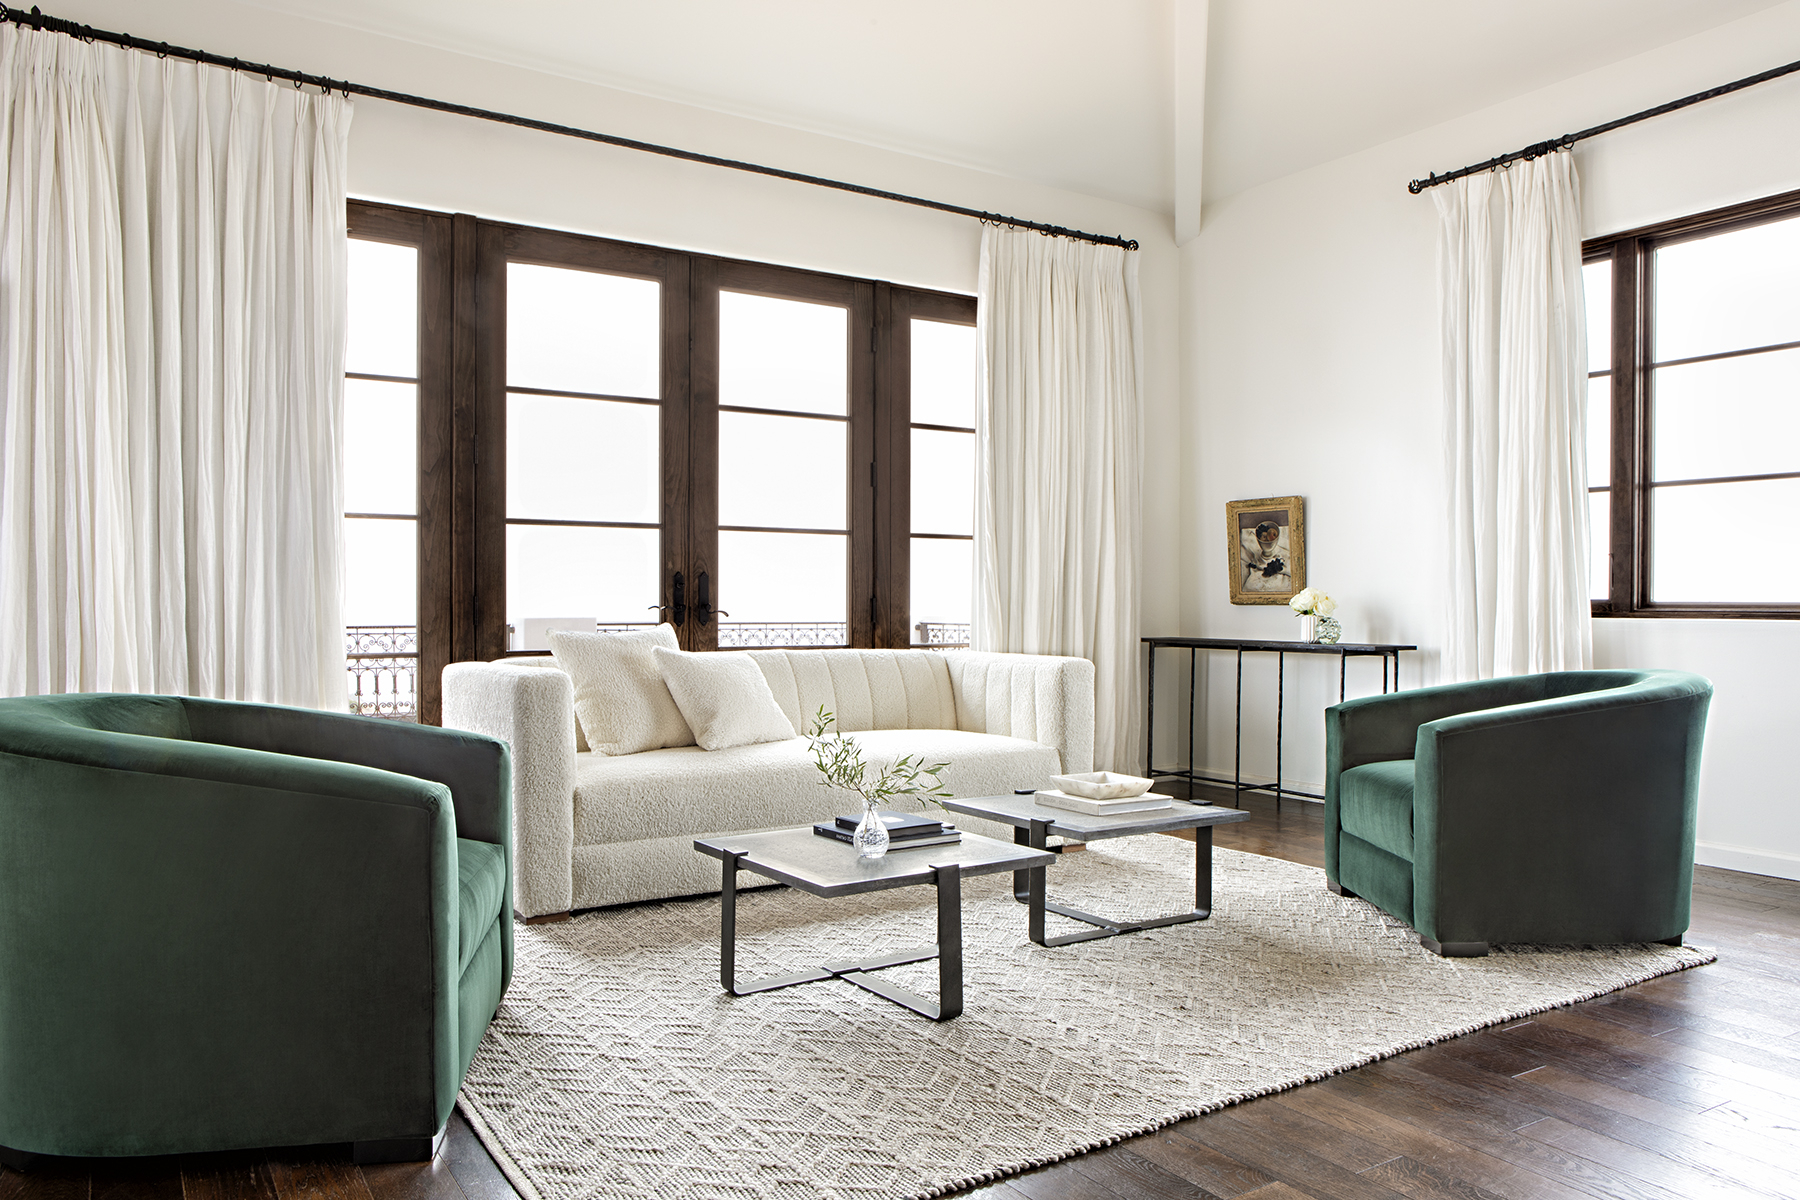 Nate Berkus & Jeremiah Brent's Newest Affordable Collection (View 5 of 20)